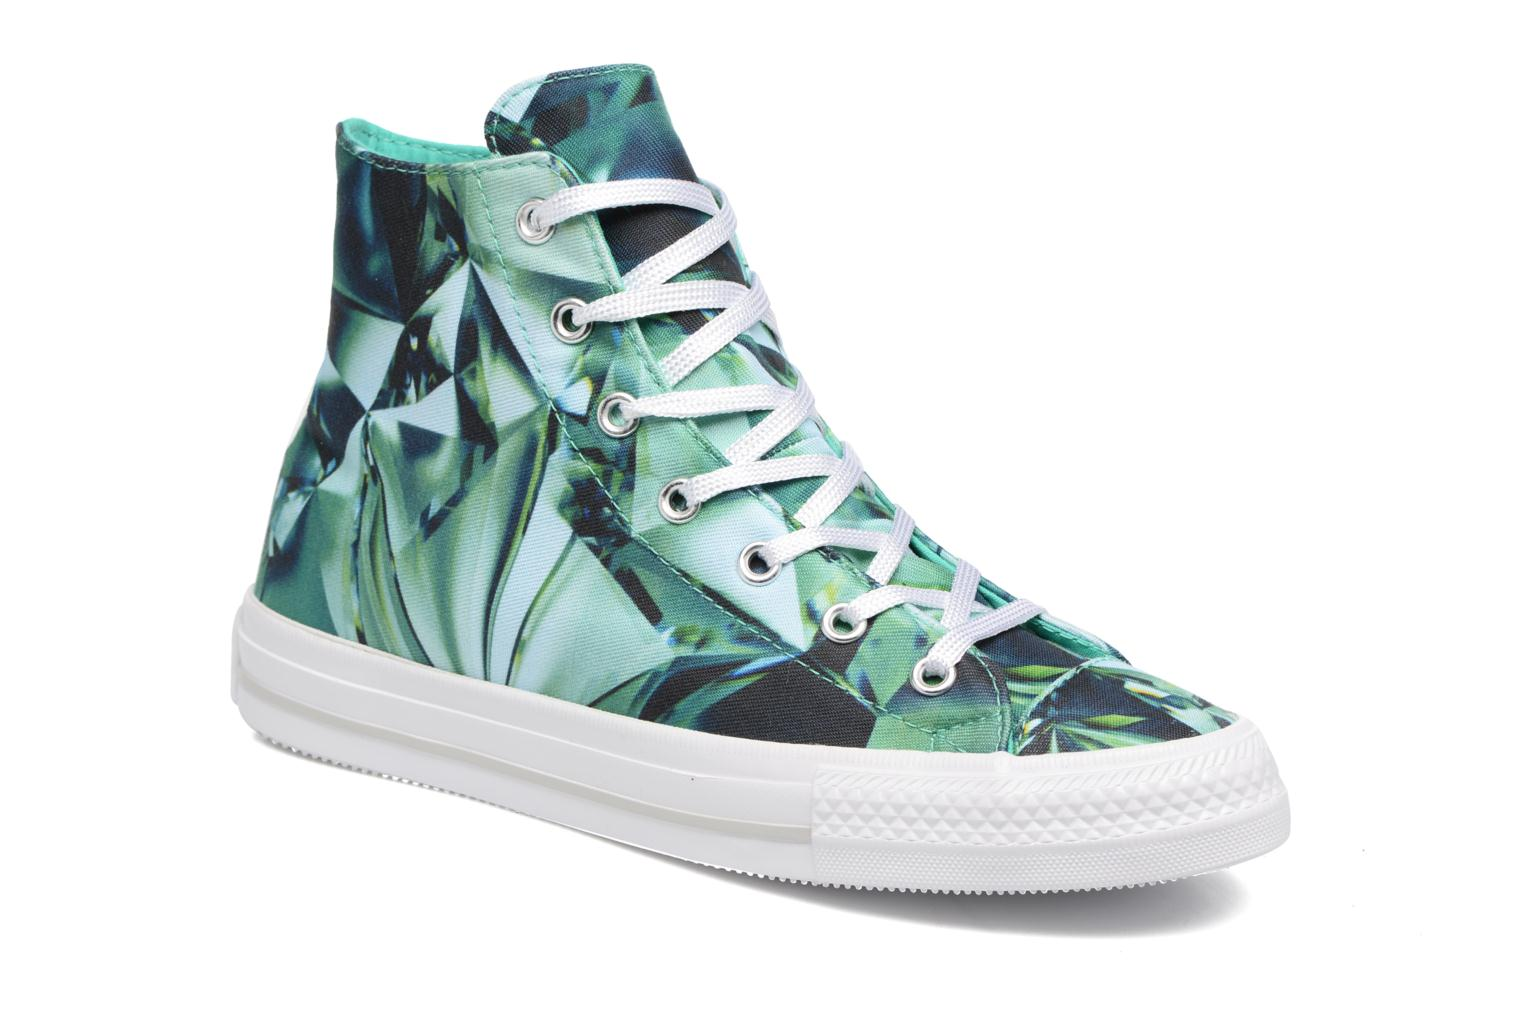 quality design 644a7 4767d Converse Chuck Taylor All Star Gemma High Damen Sneaker Grün - associate- degree.de